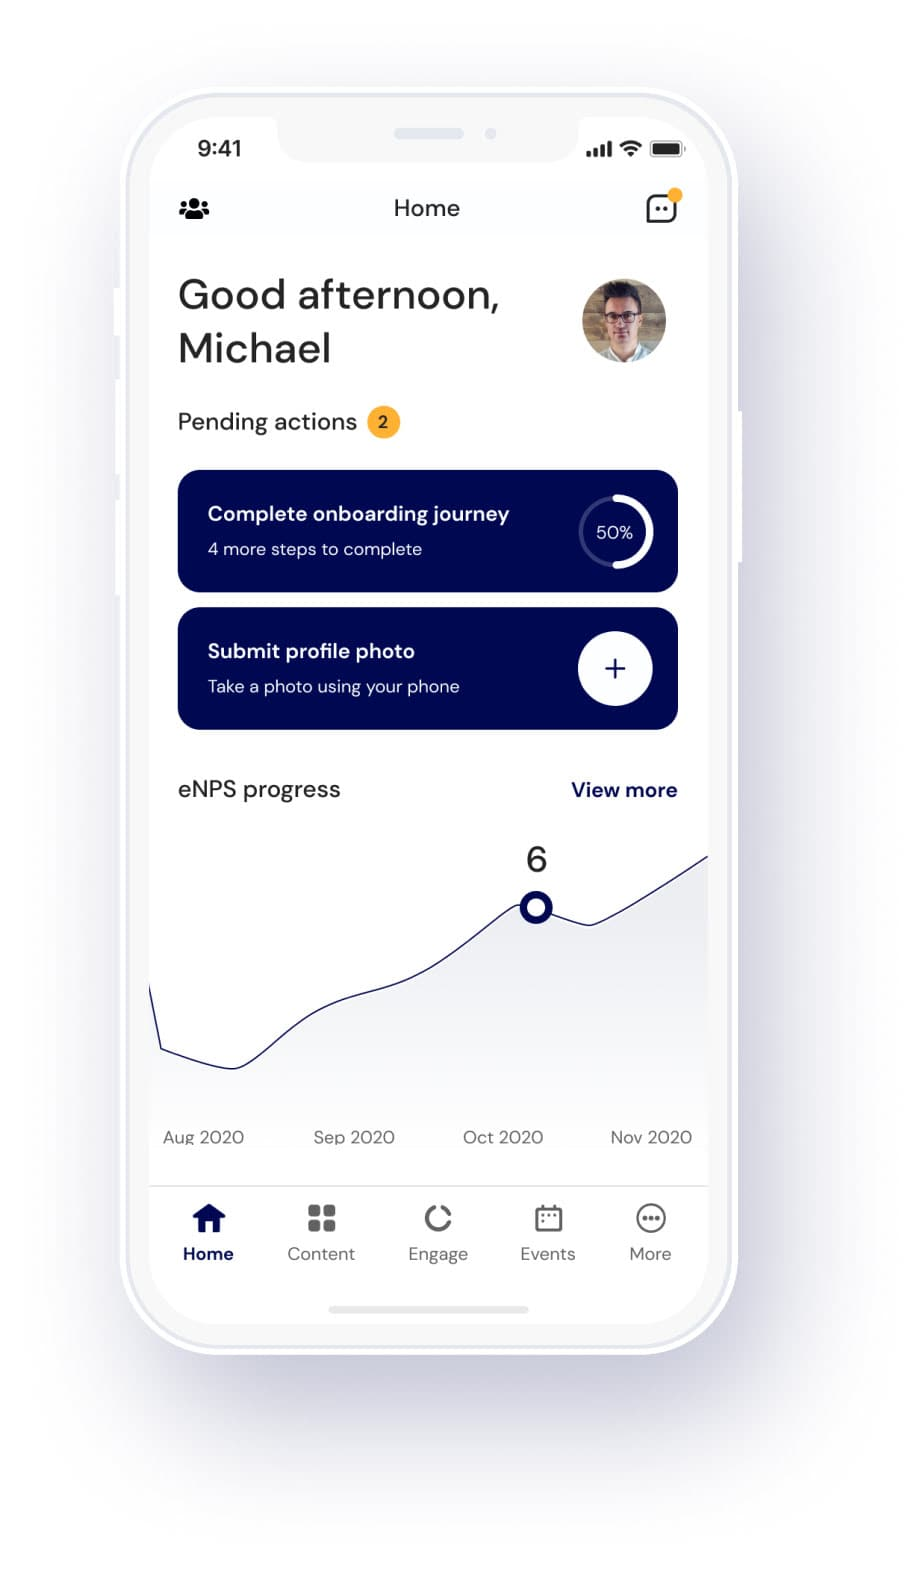 Qualee Employee Engagement App - Pending Actions